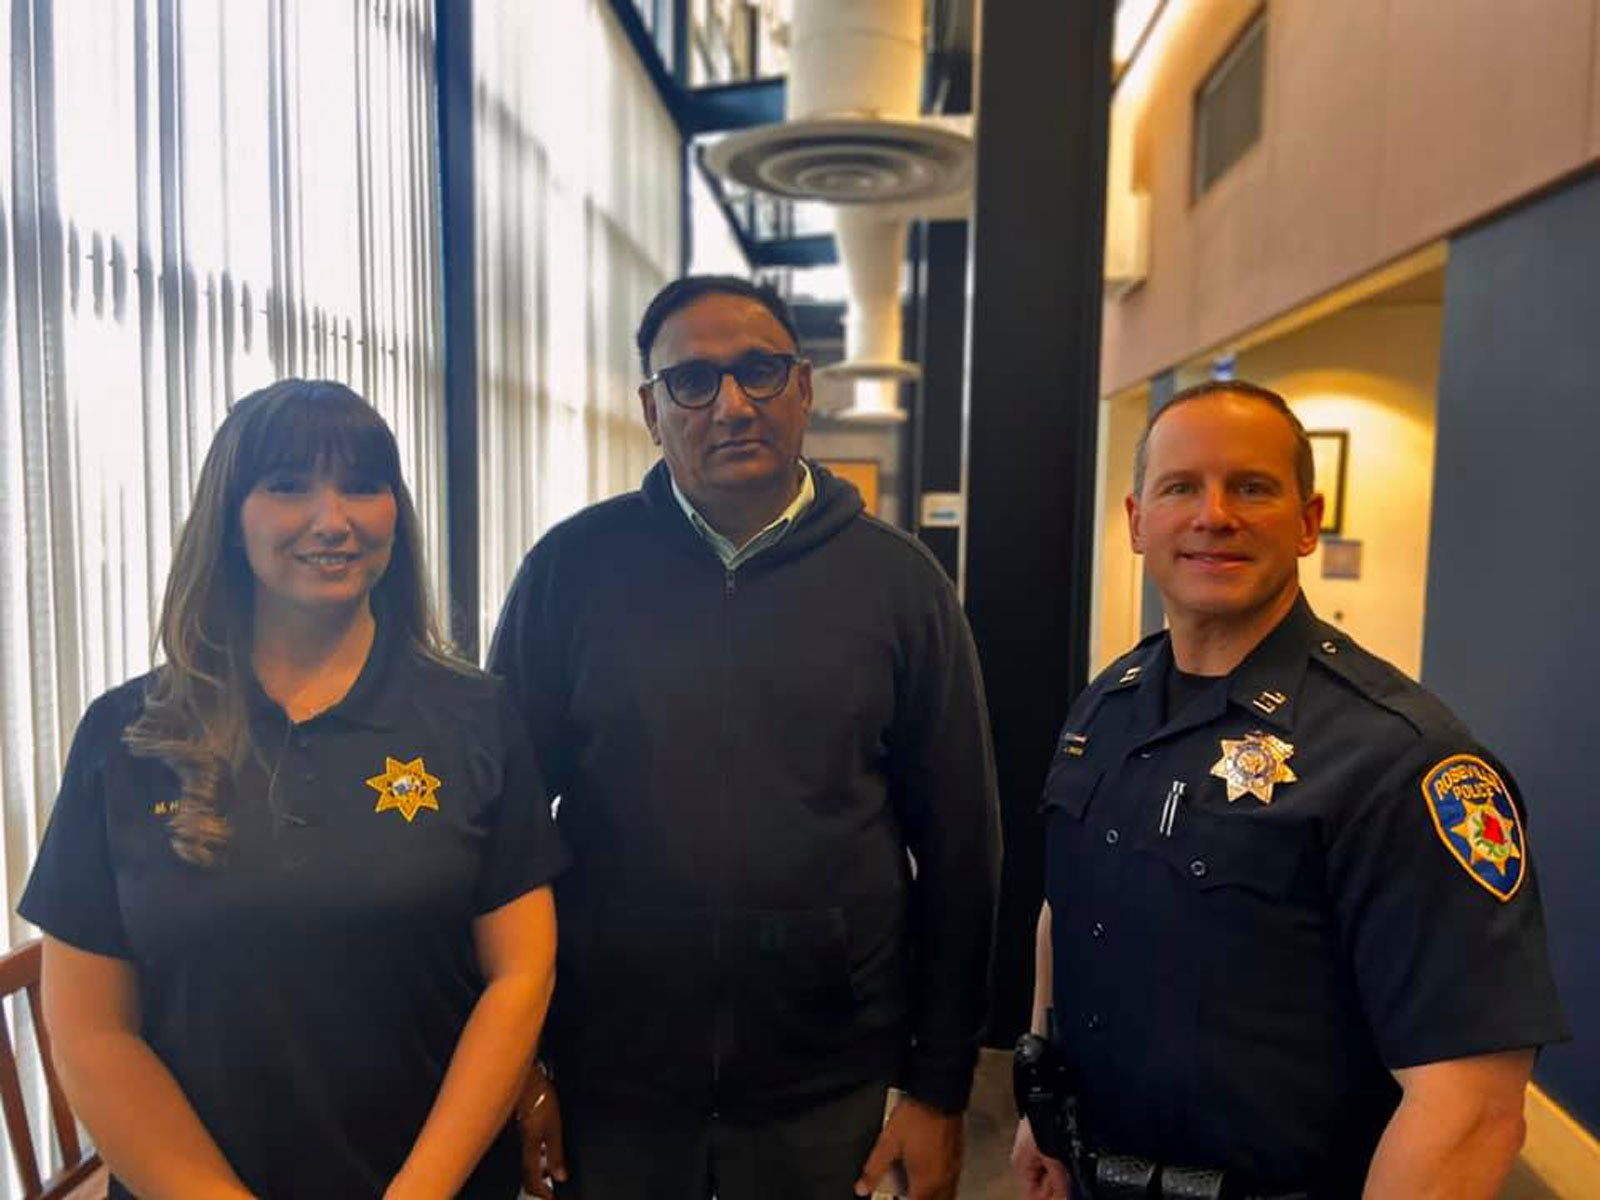 Rajbir Singh stands with Roseville Police records clerk Megan Harrigan and police Capt. Josh Simon in this undated photo. (Credit: Roseville Police Department via CNN)